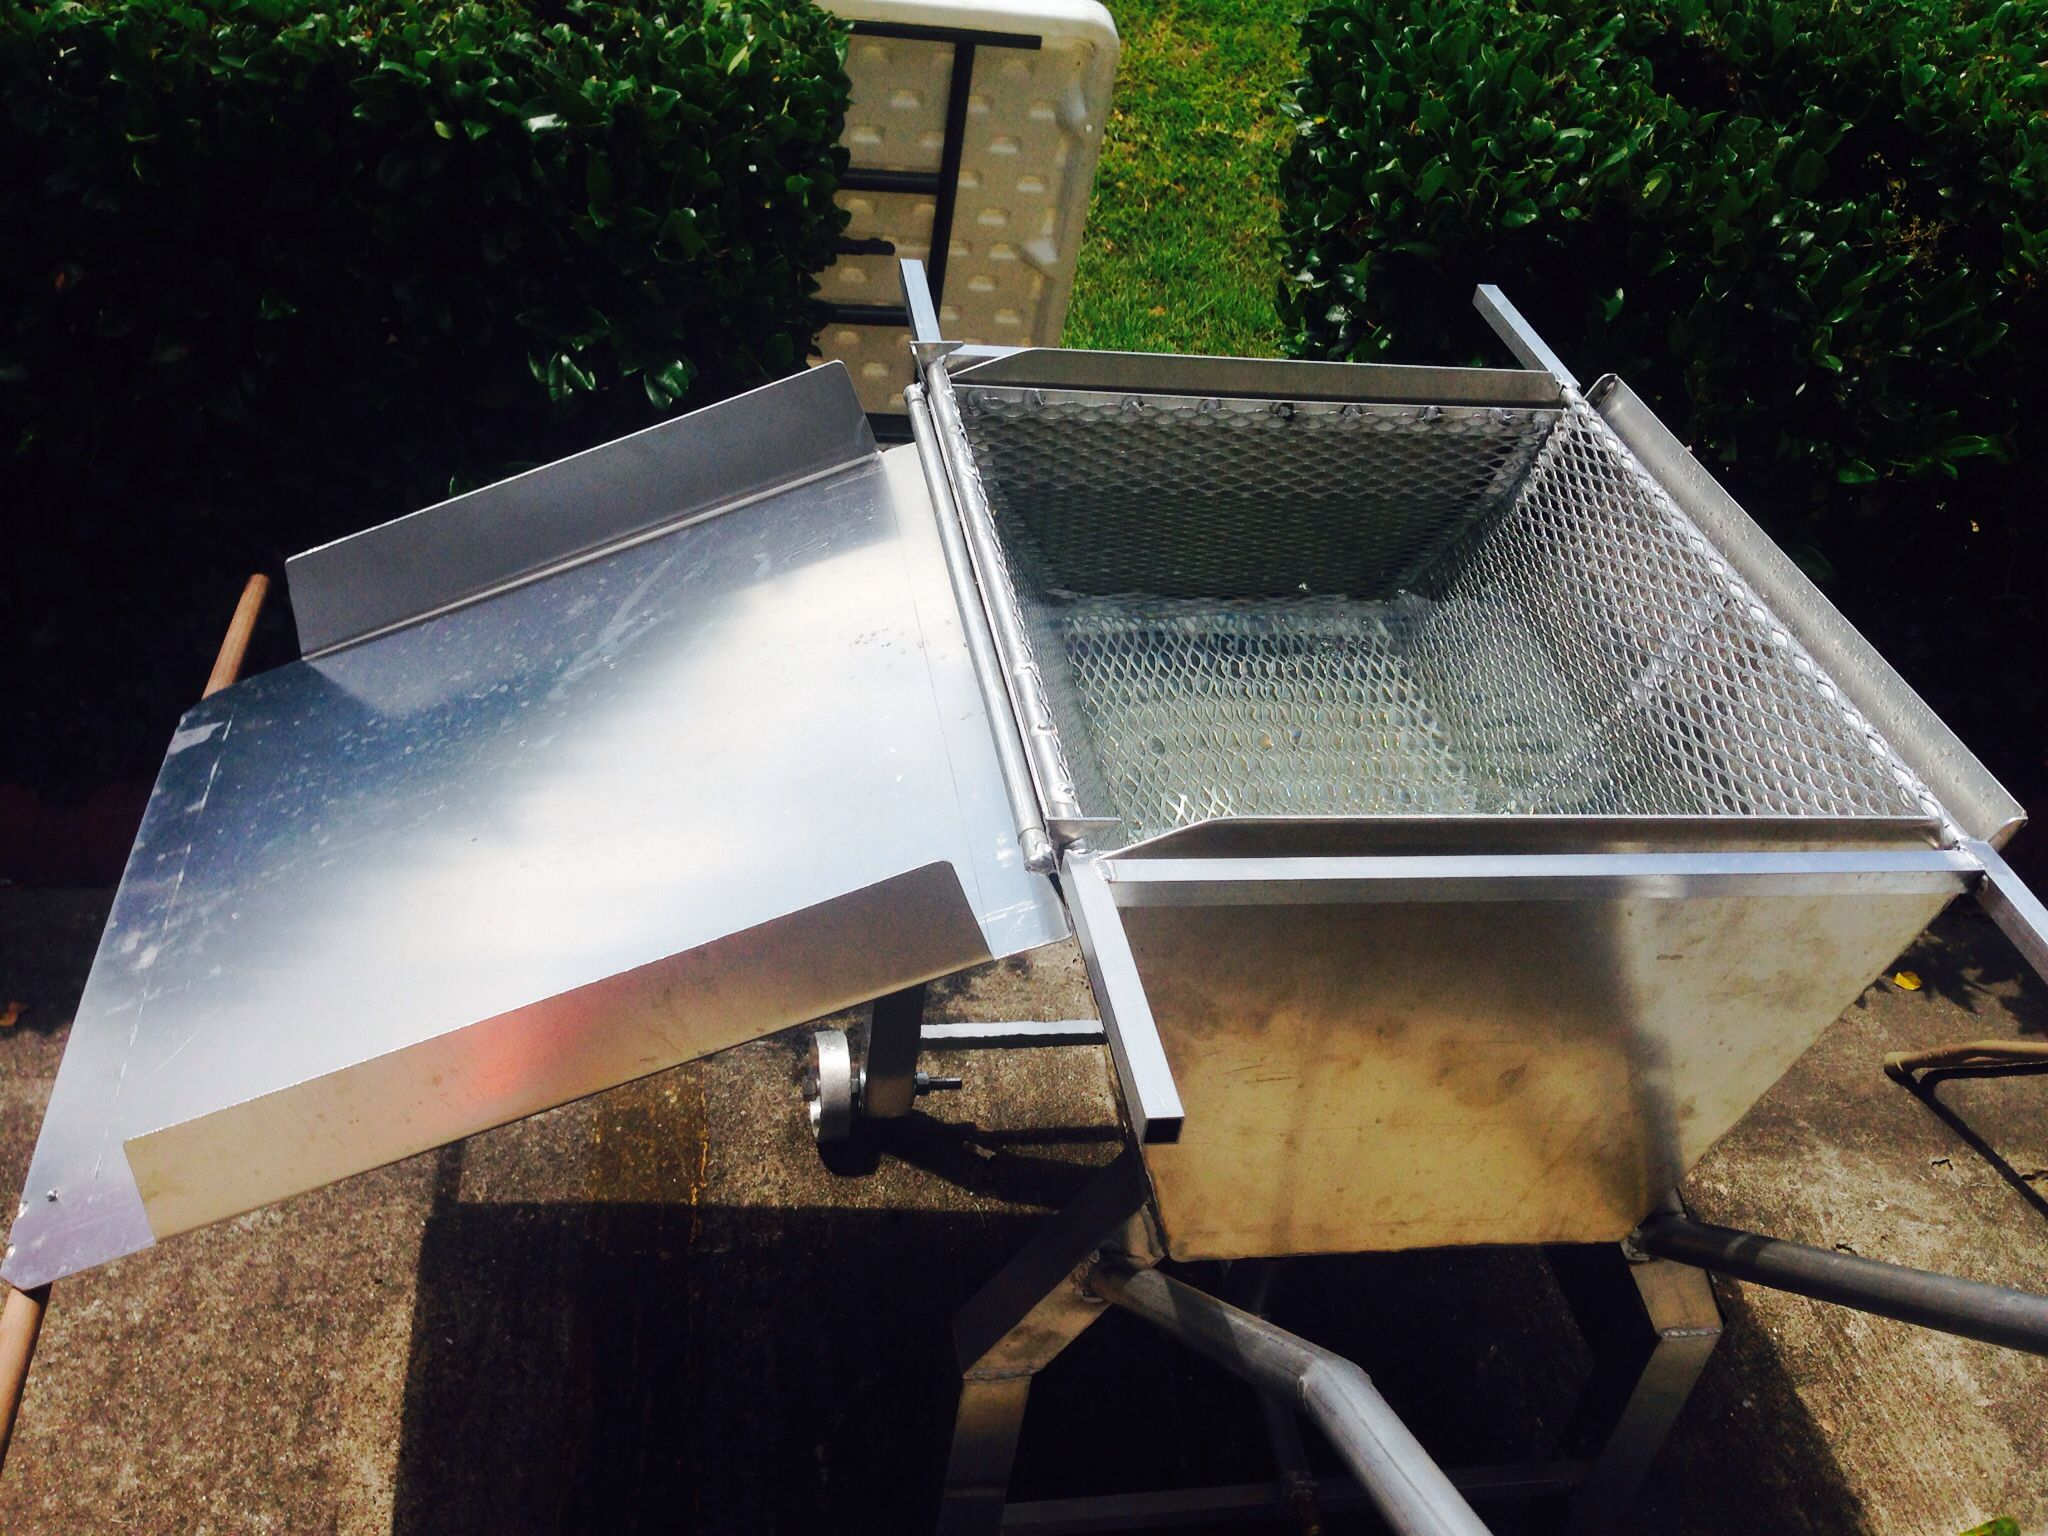 Crawfish Cookers For Sale Soak A Sak Cookers Crawfish Cooker Crawfish Season Crawfish Pot